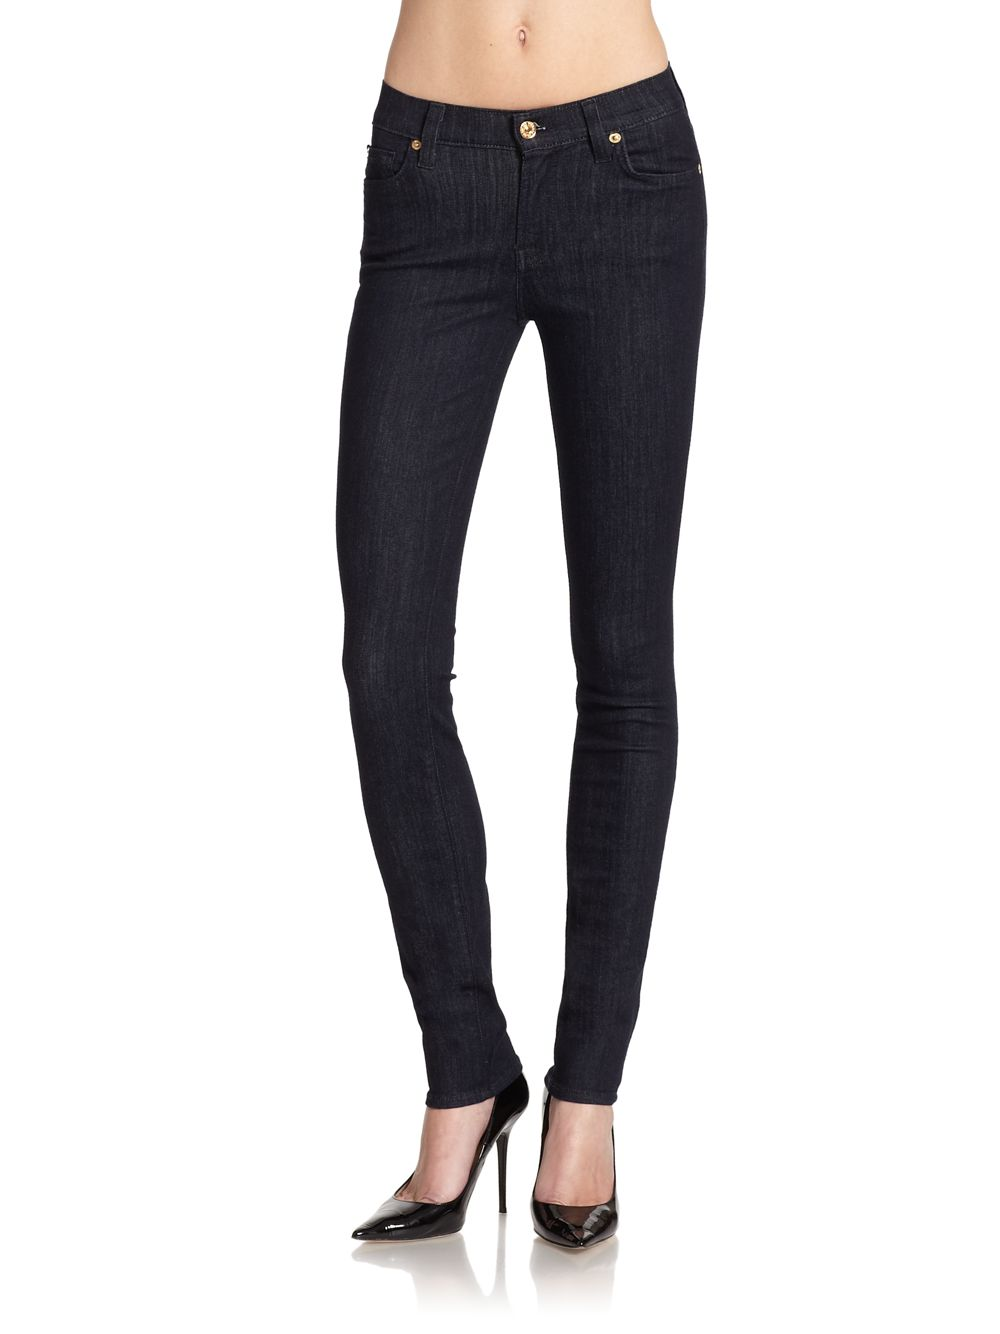 7 for all mankind mid rise roxanne skinny jeans in black. Black Bedroom Furniture Sets. Home Design Ideas